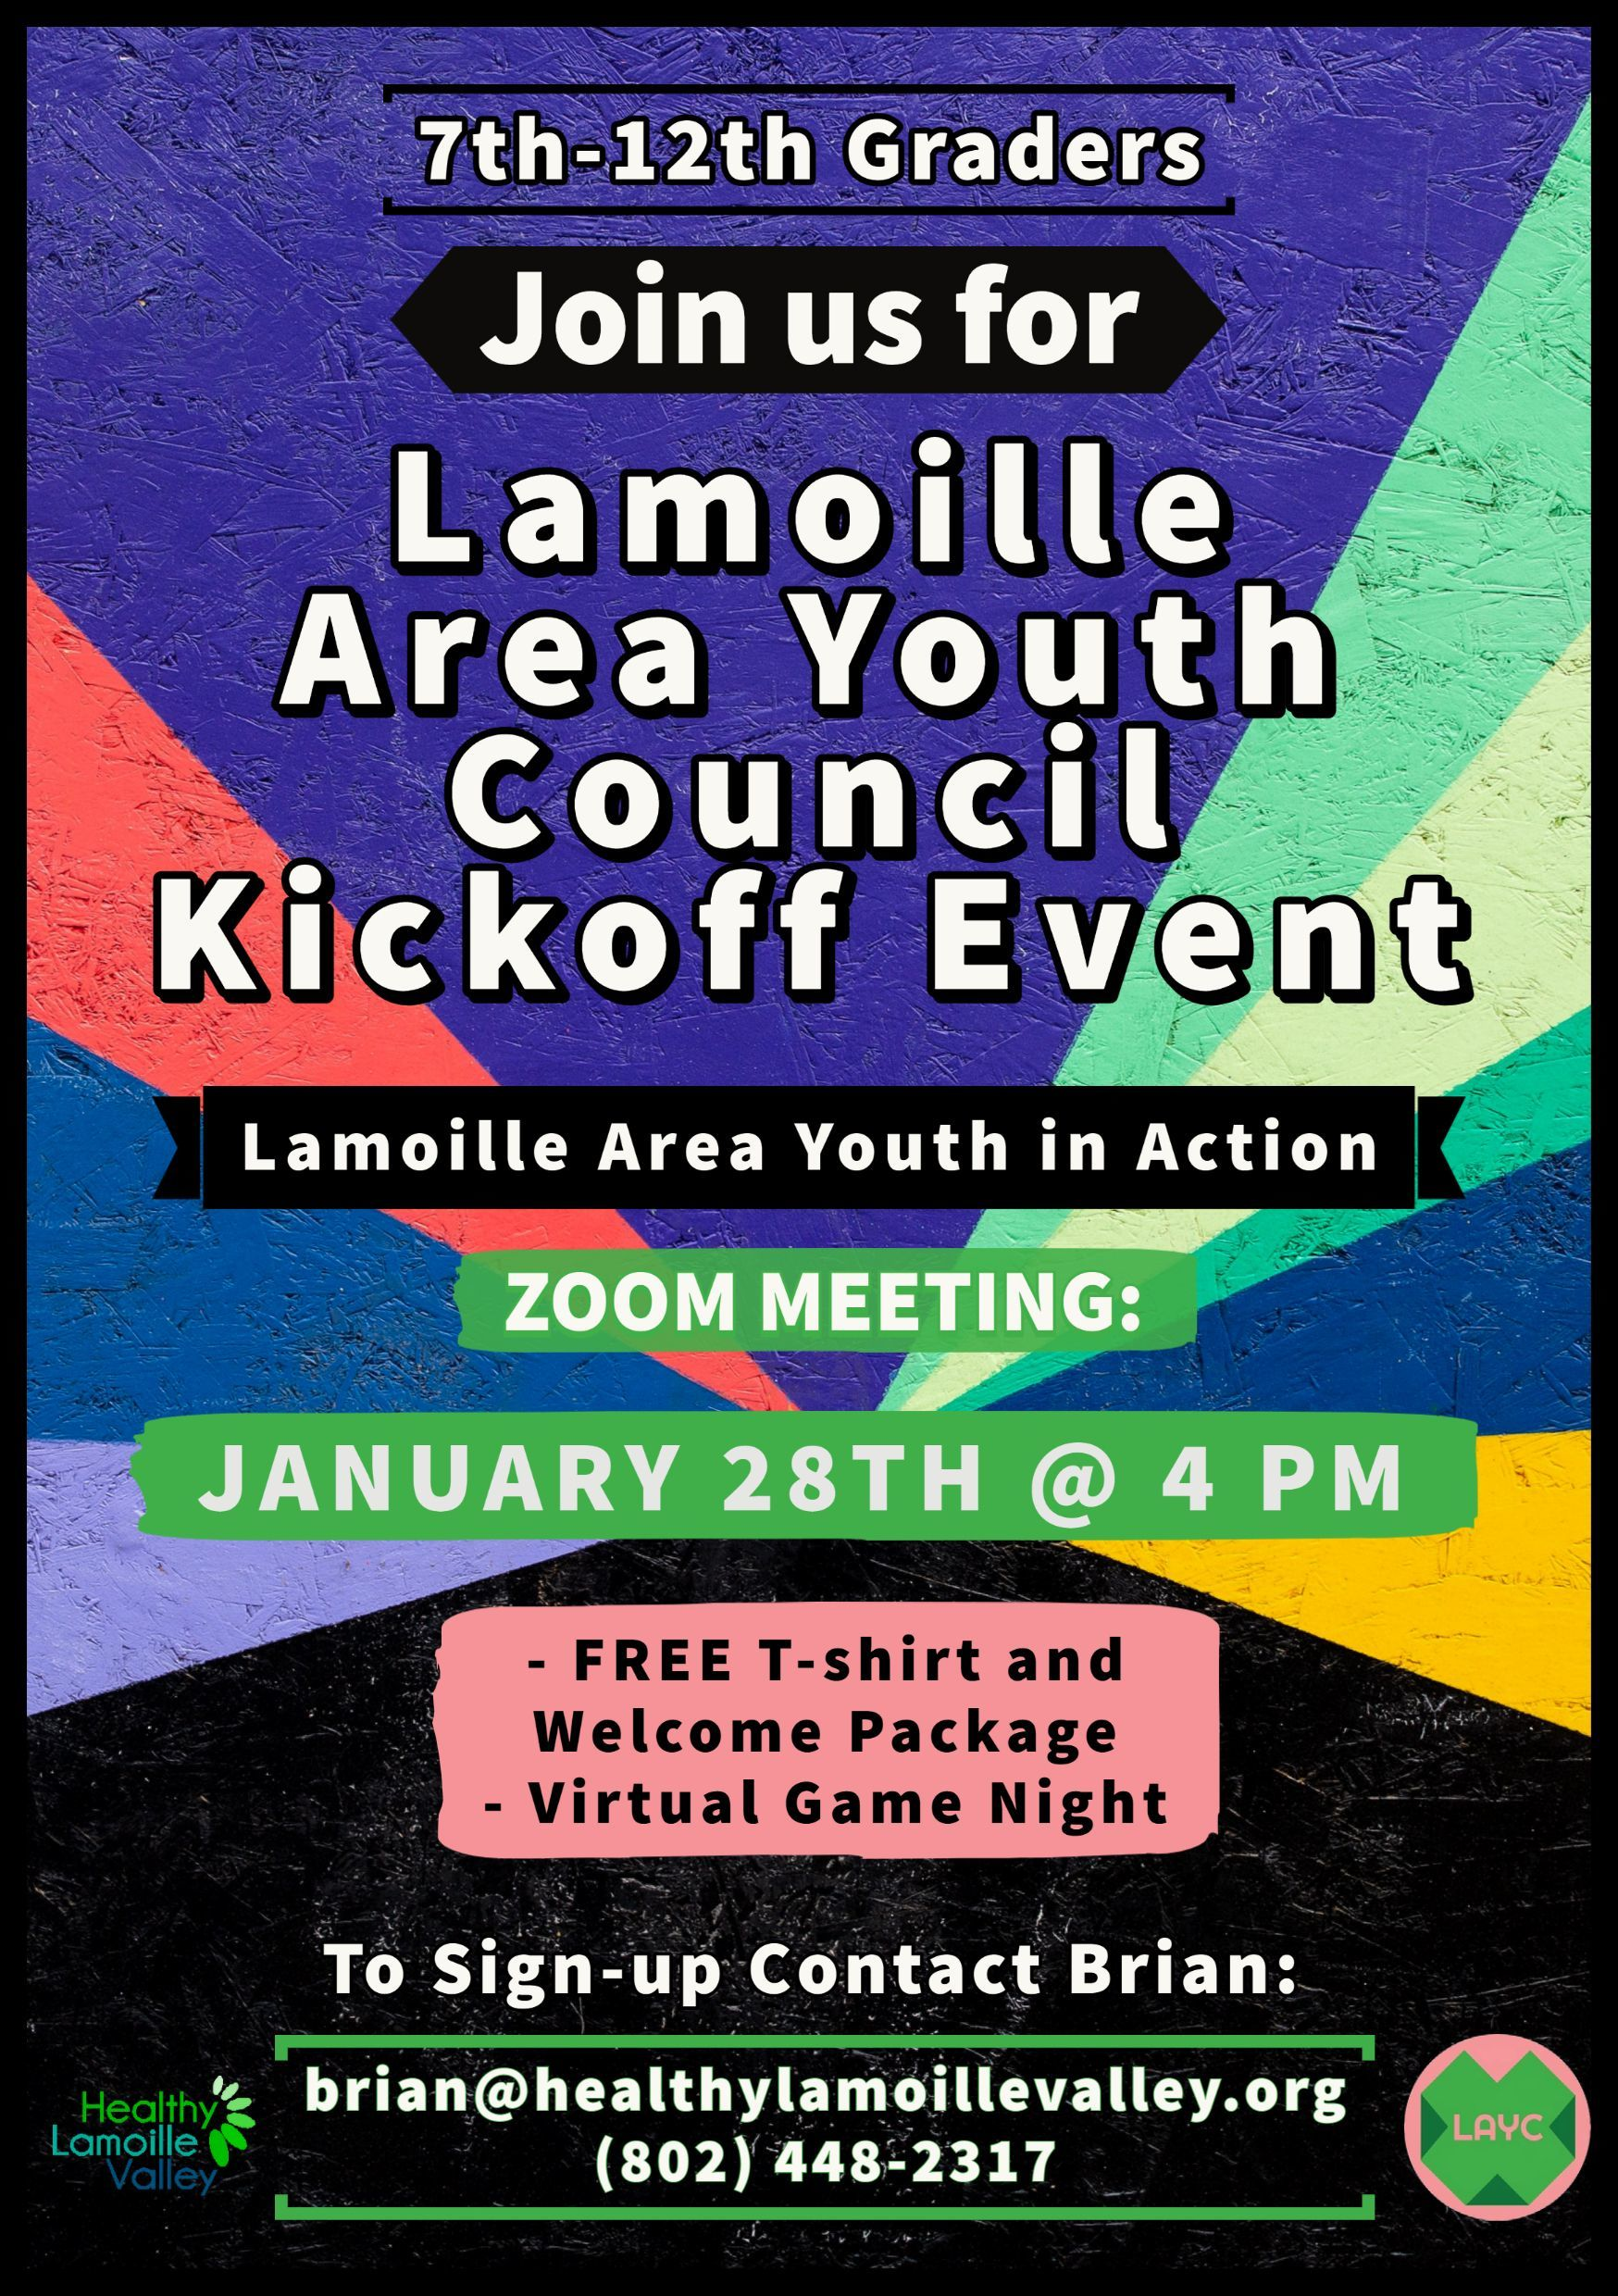 Lamoille Area Youth Council Kickoff Event